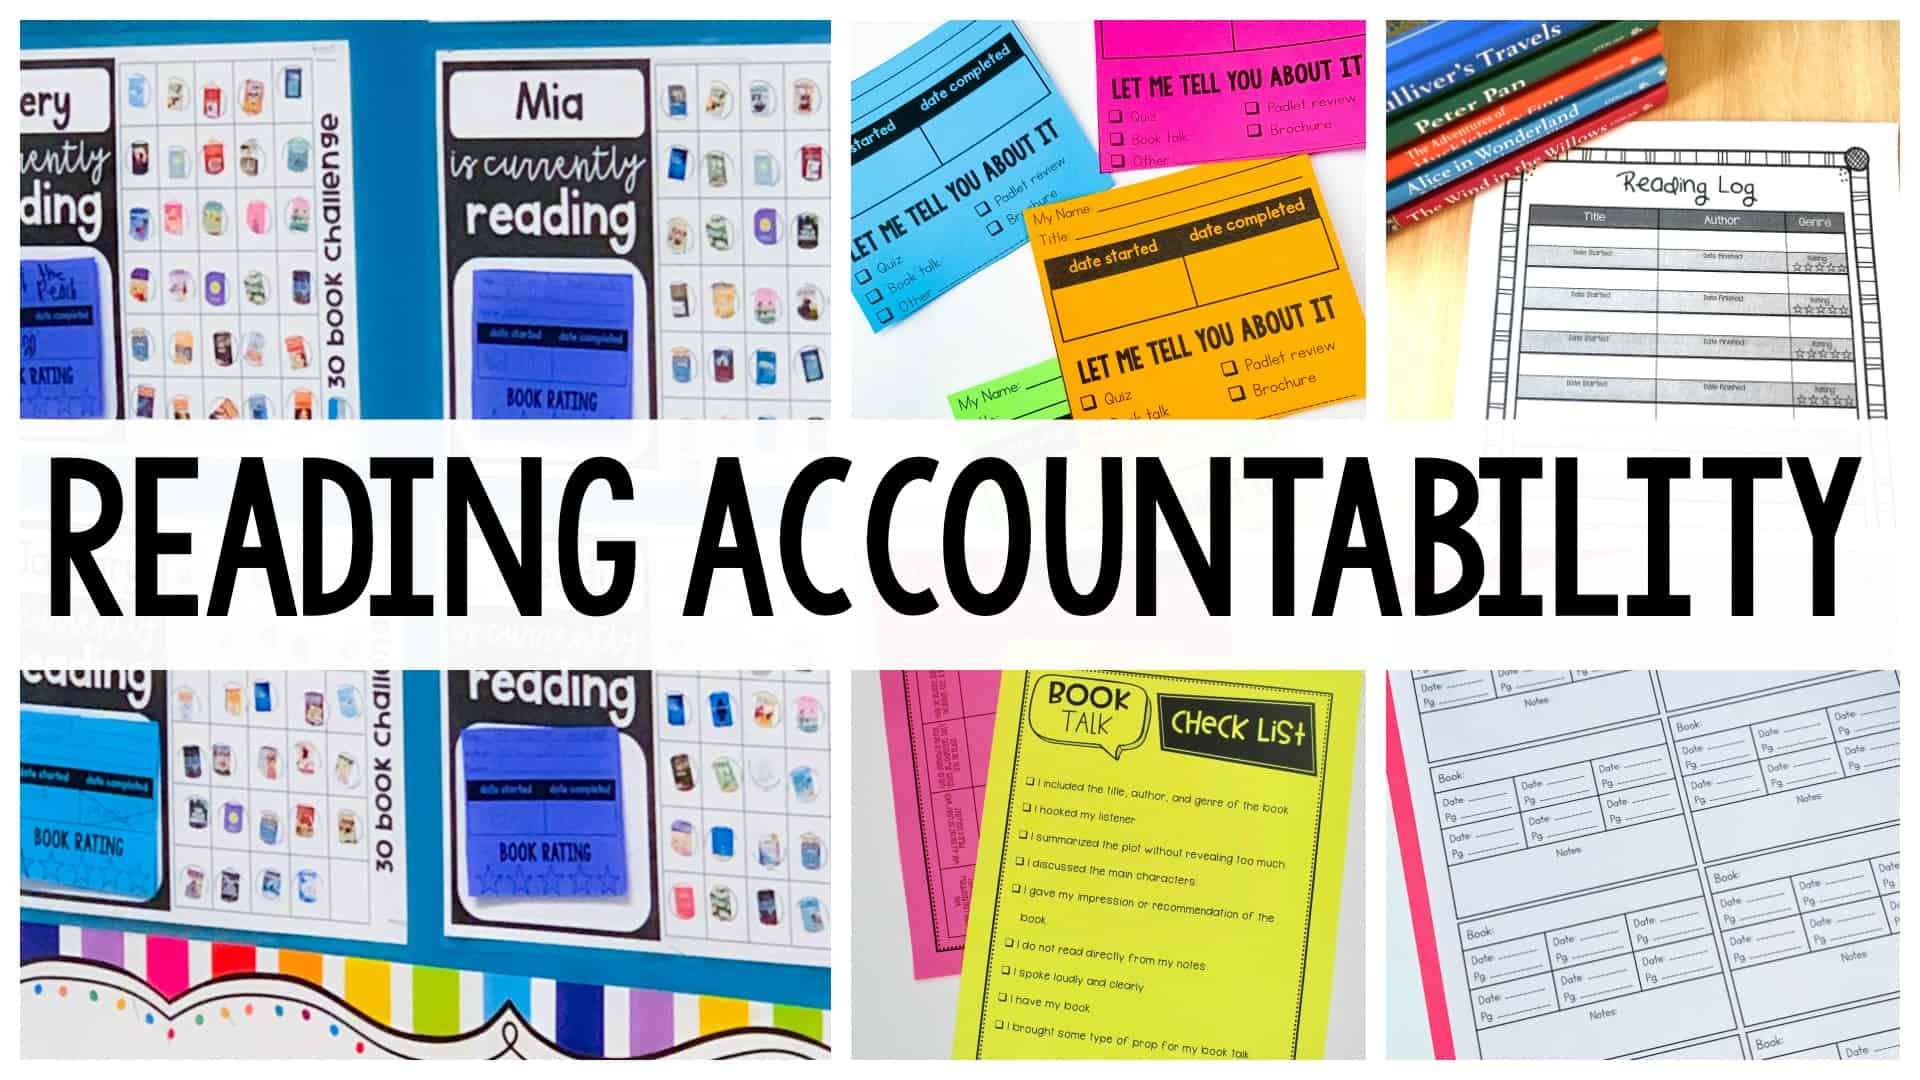 Reading Accountability header with reading worksheets in the background